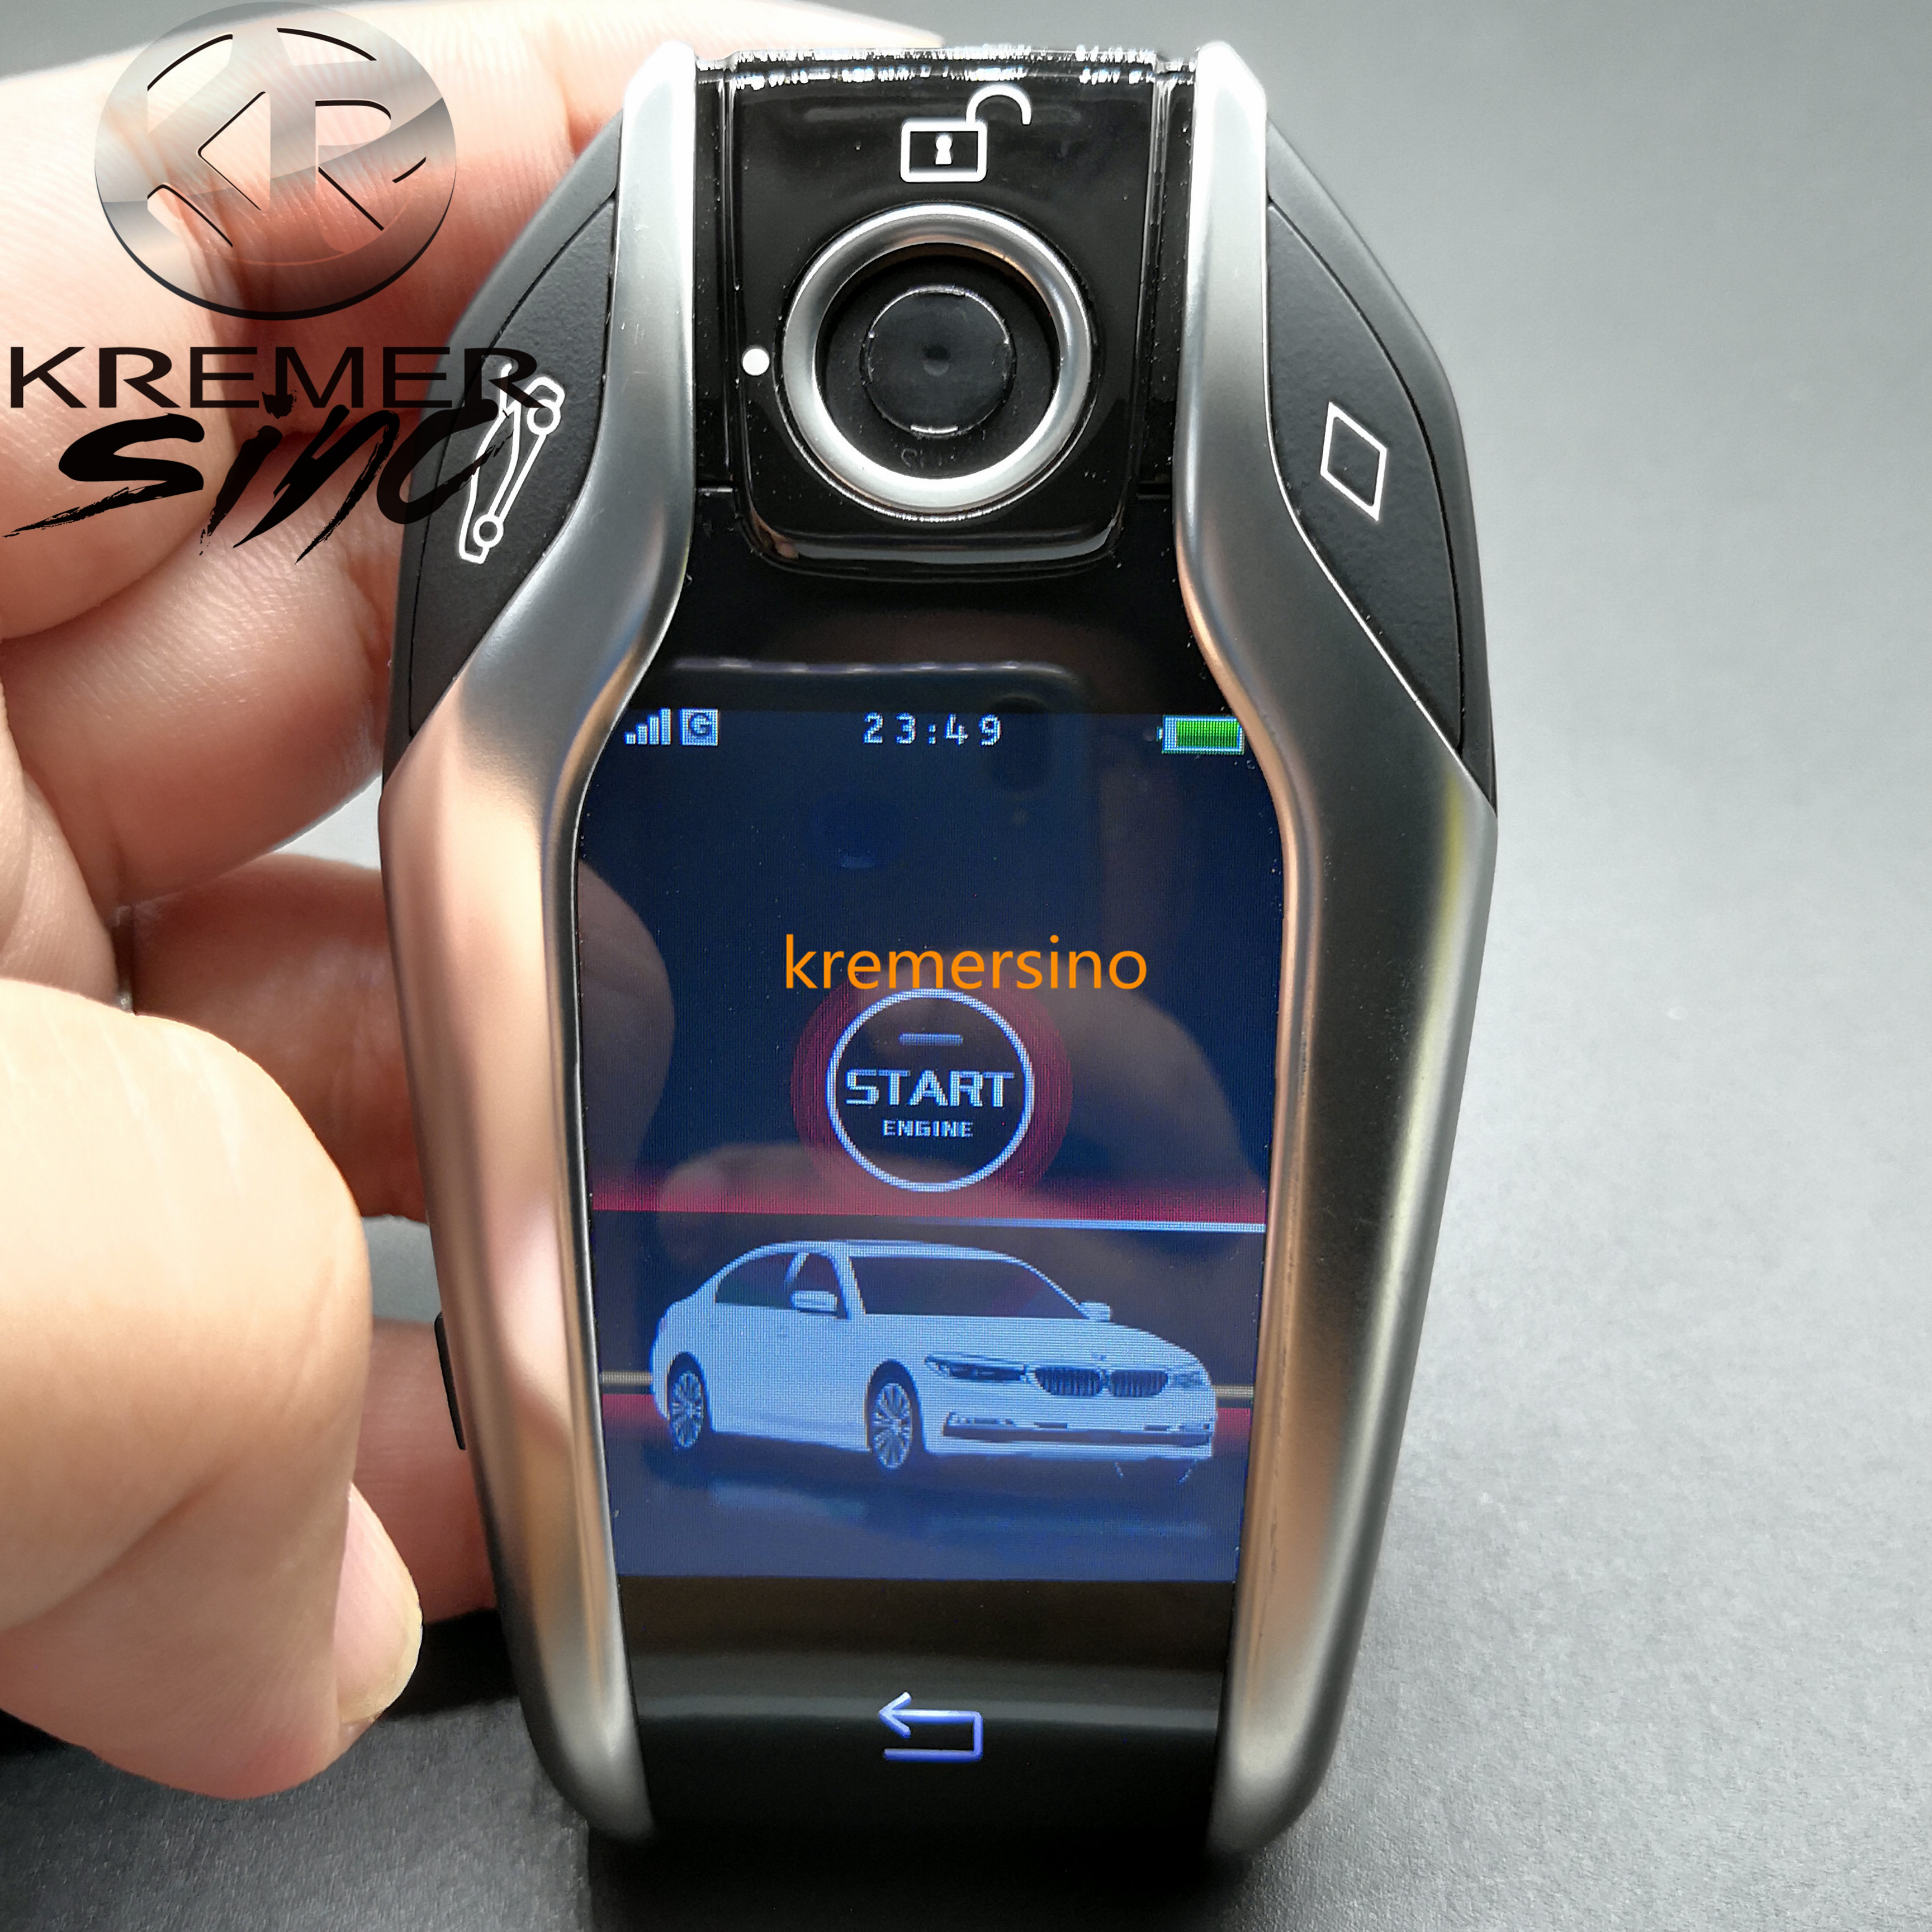 Free Shipping Aftermarket Display Key For BMW G Model F Model  BMW Keyfob With Display Key Fob With Touch Screen